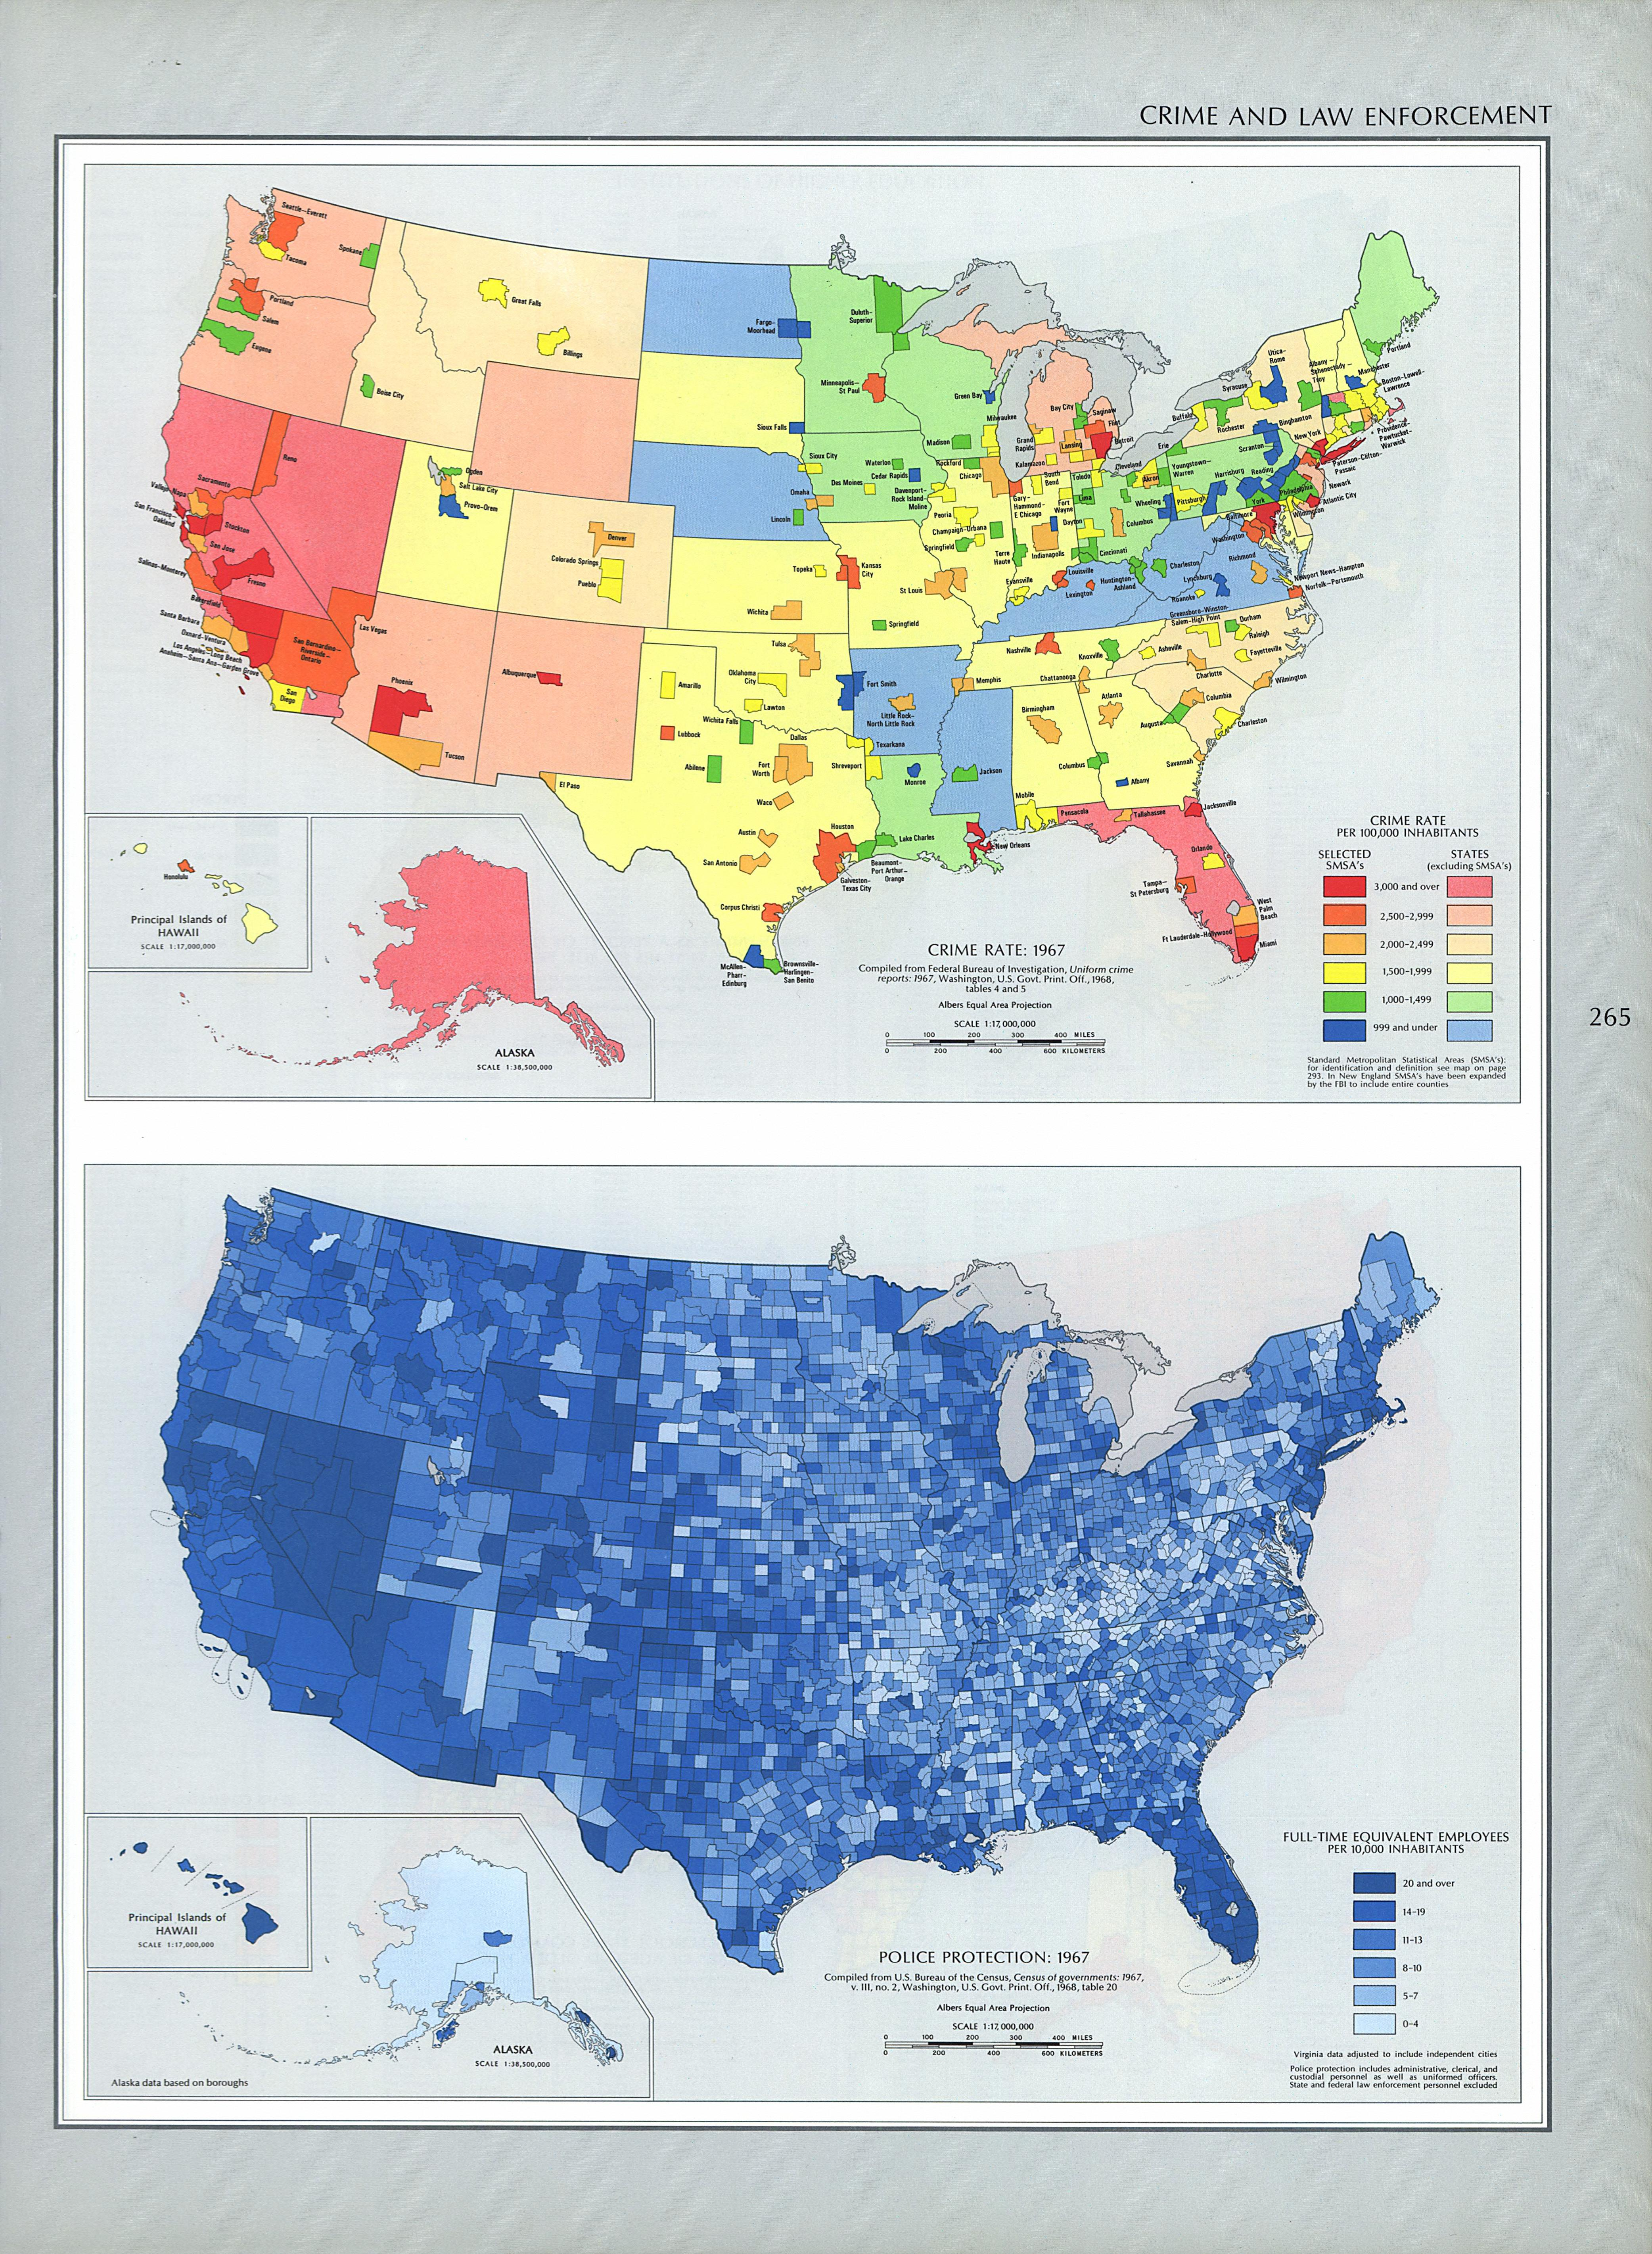 United States Crime and Law Enforcement Map